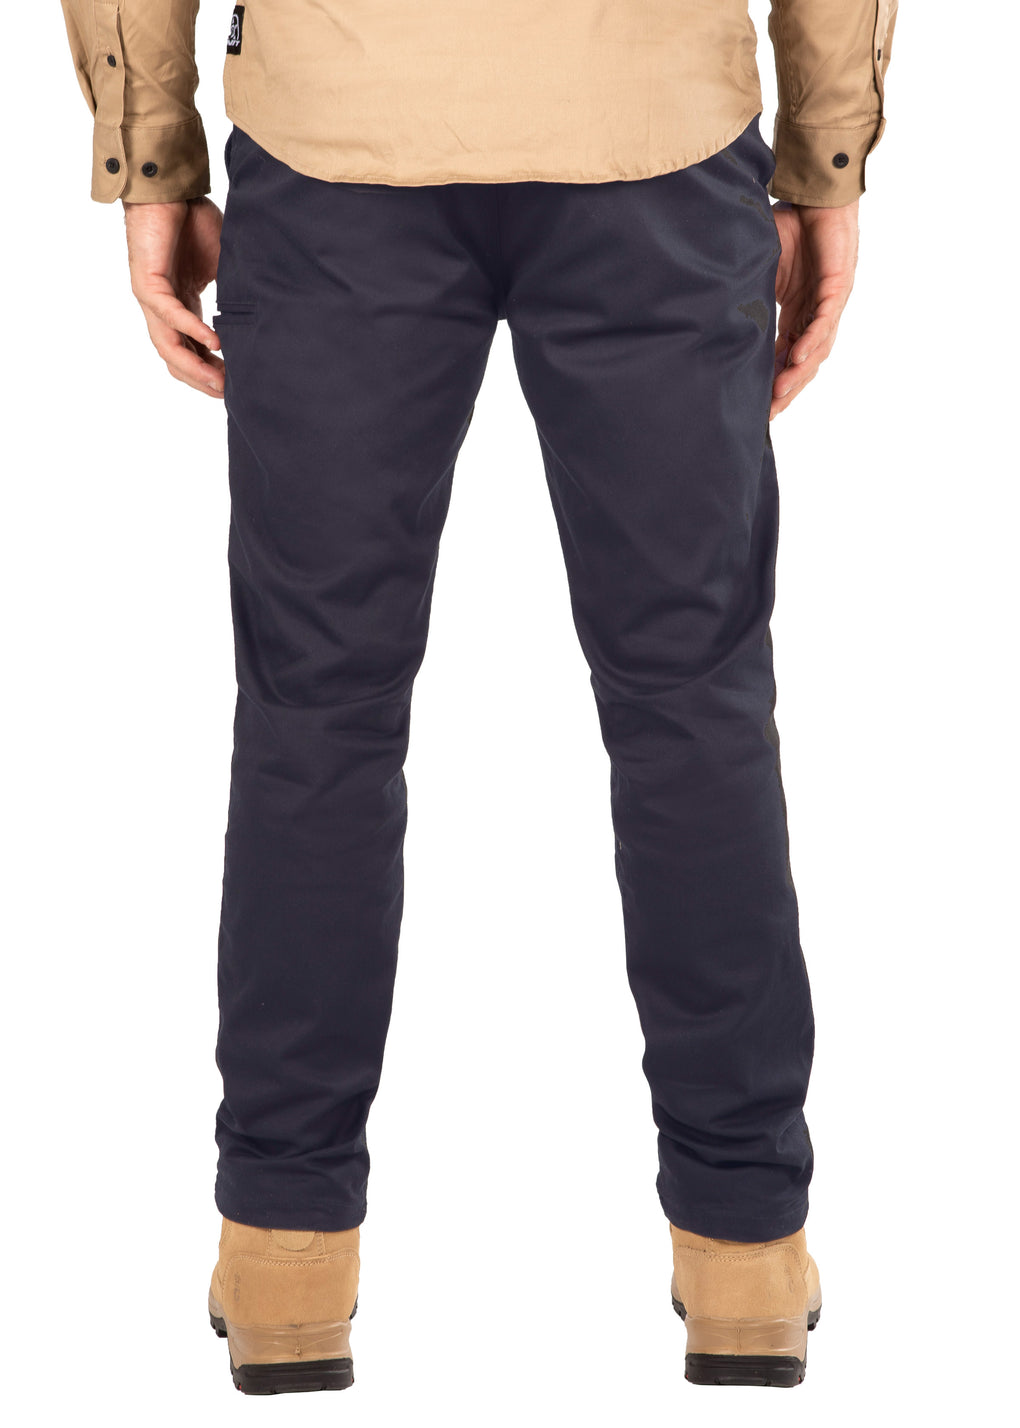 Ignition Work Pants